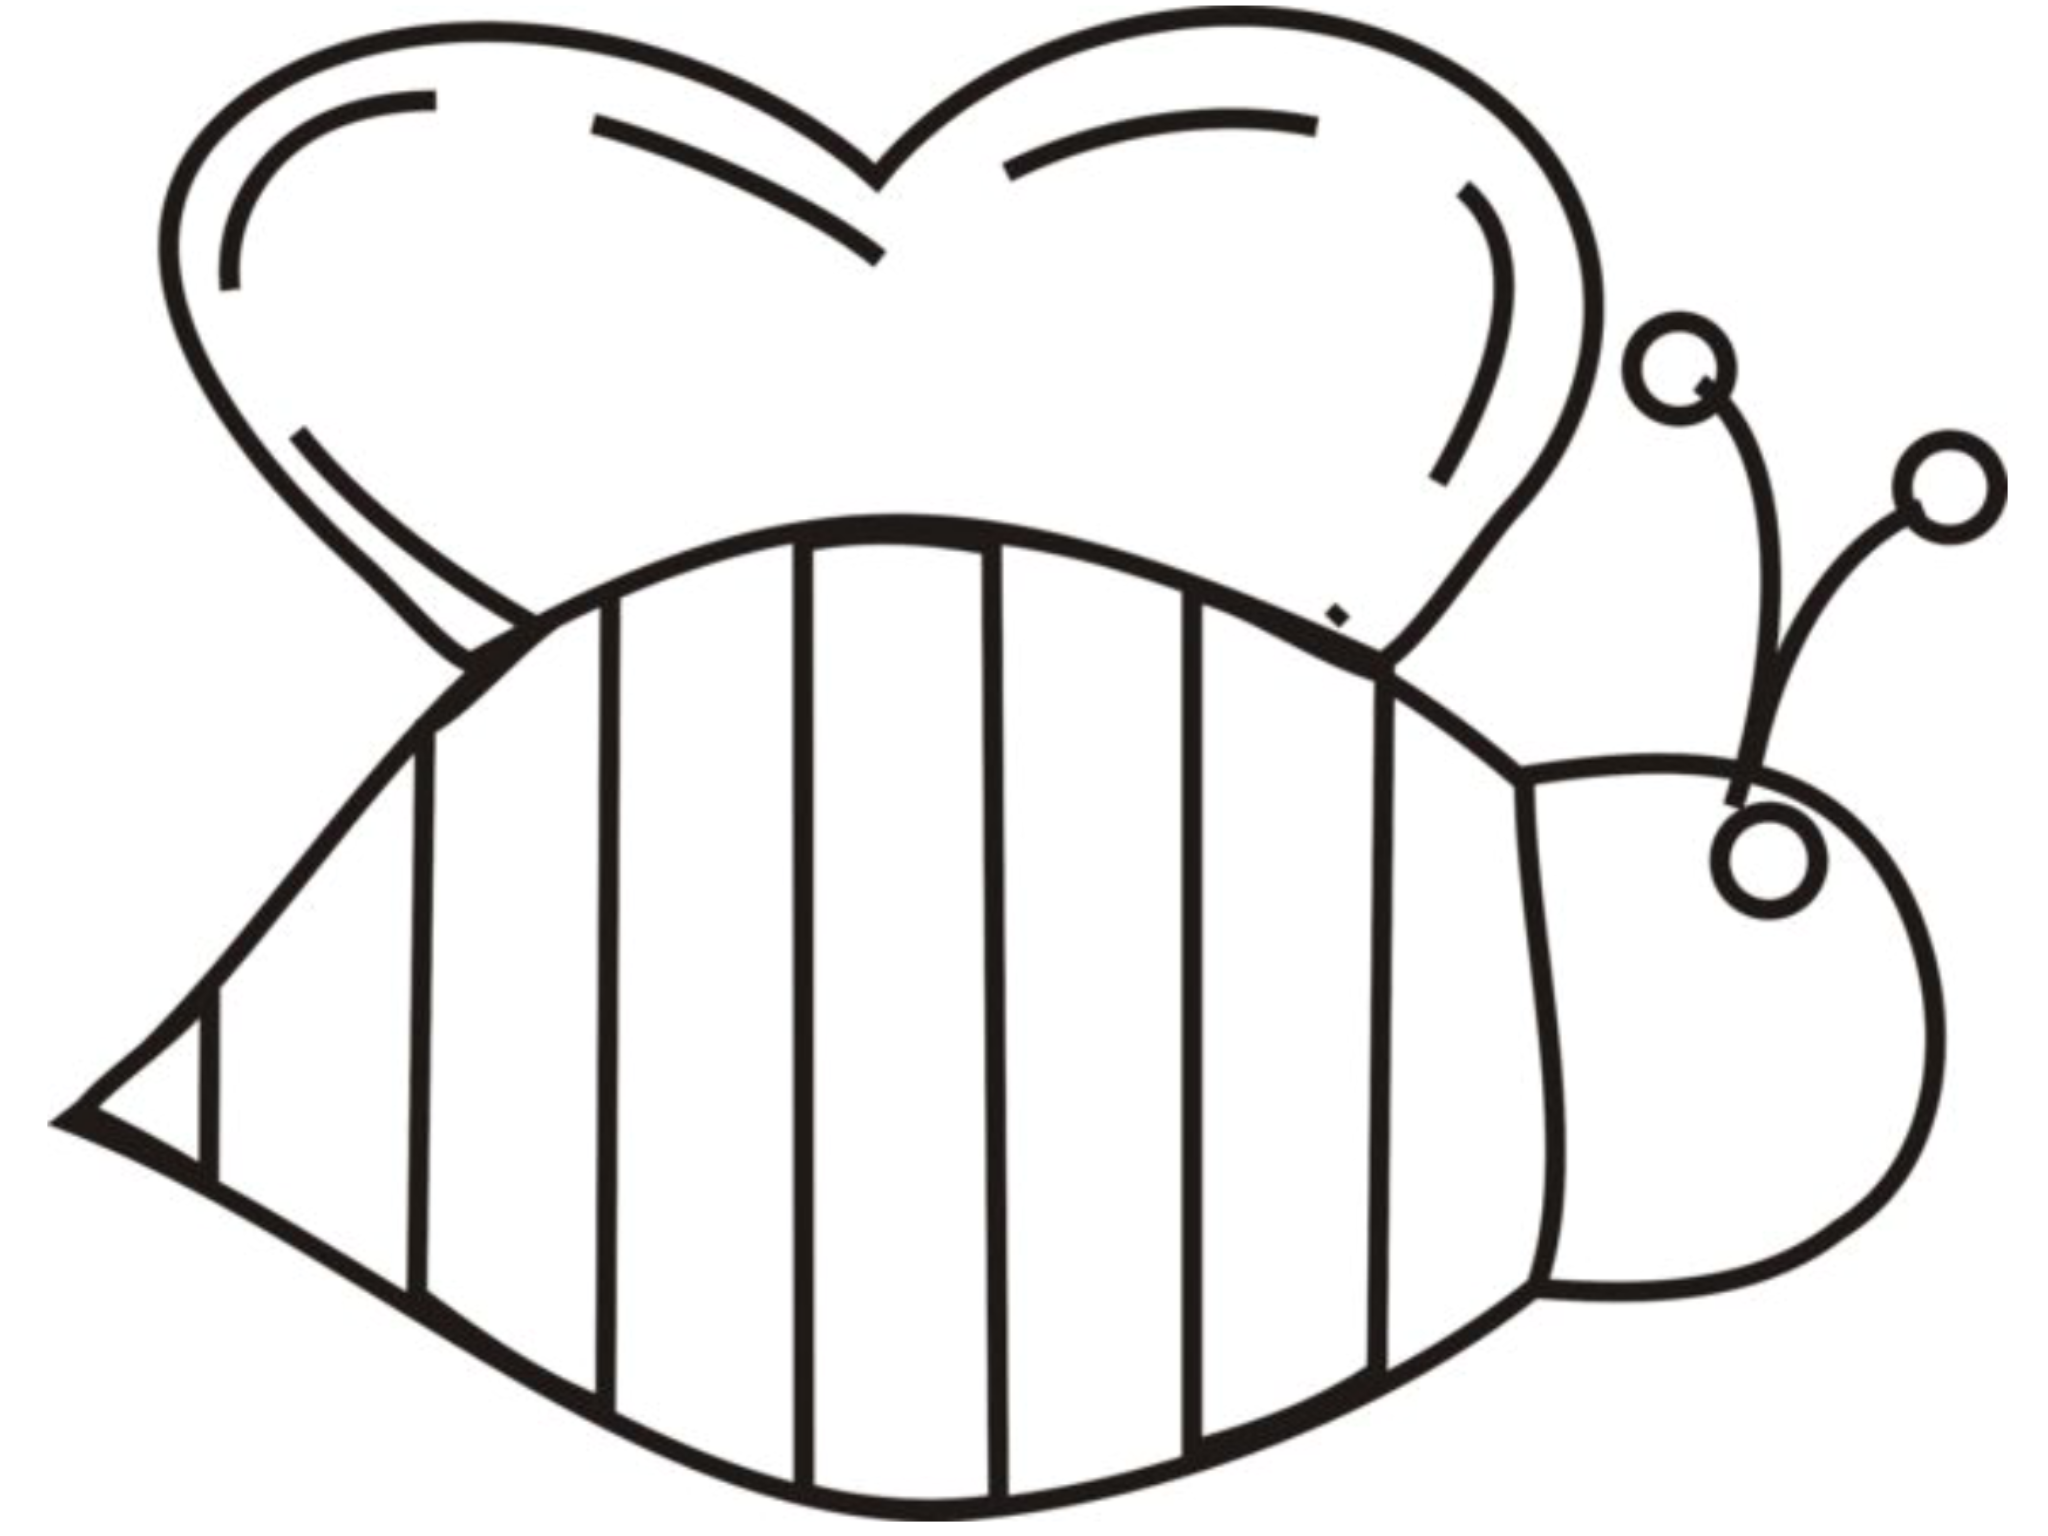 Pin By Meagan Spiegel On Aaaa Student Helper Boards Bee Coloring Pages Bee Template Bee Outline